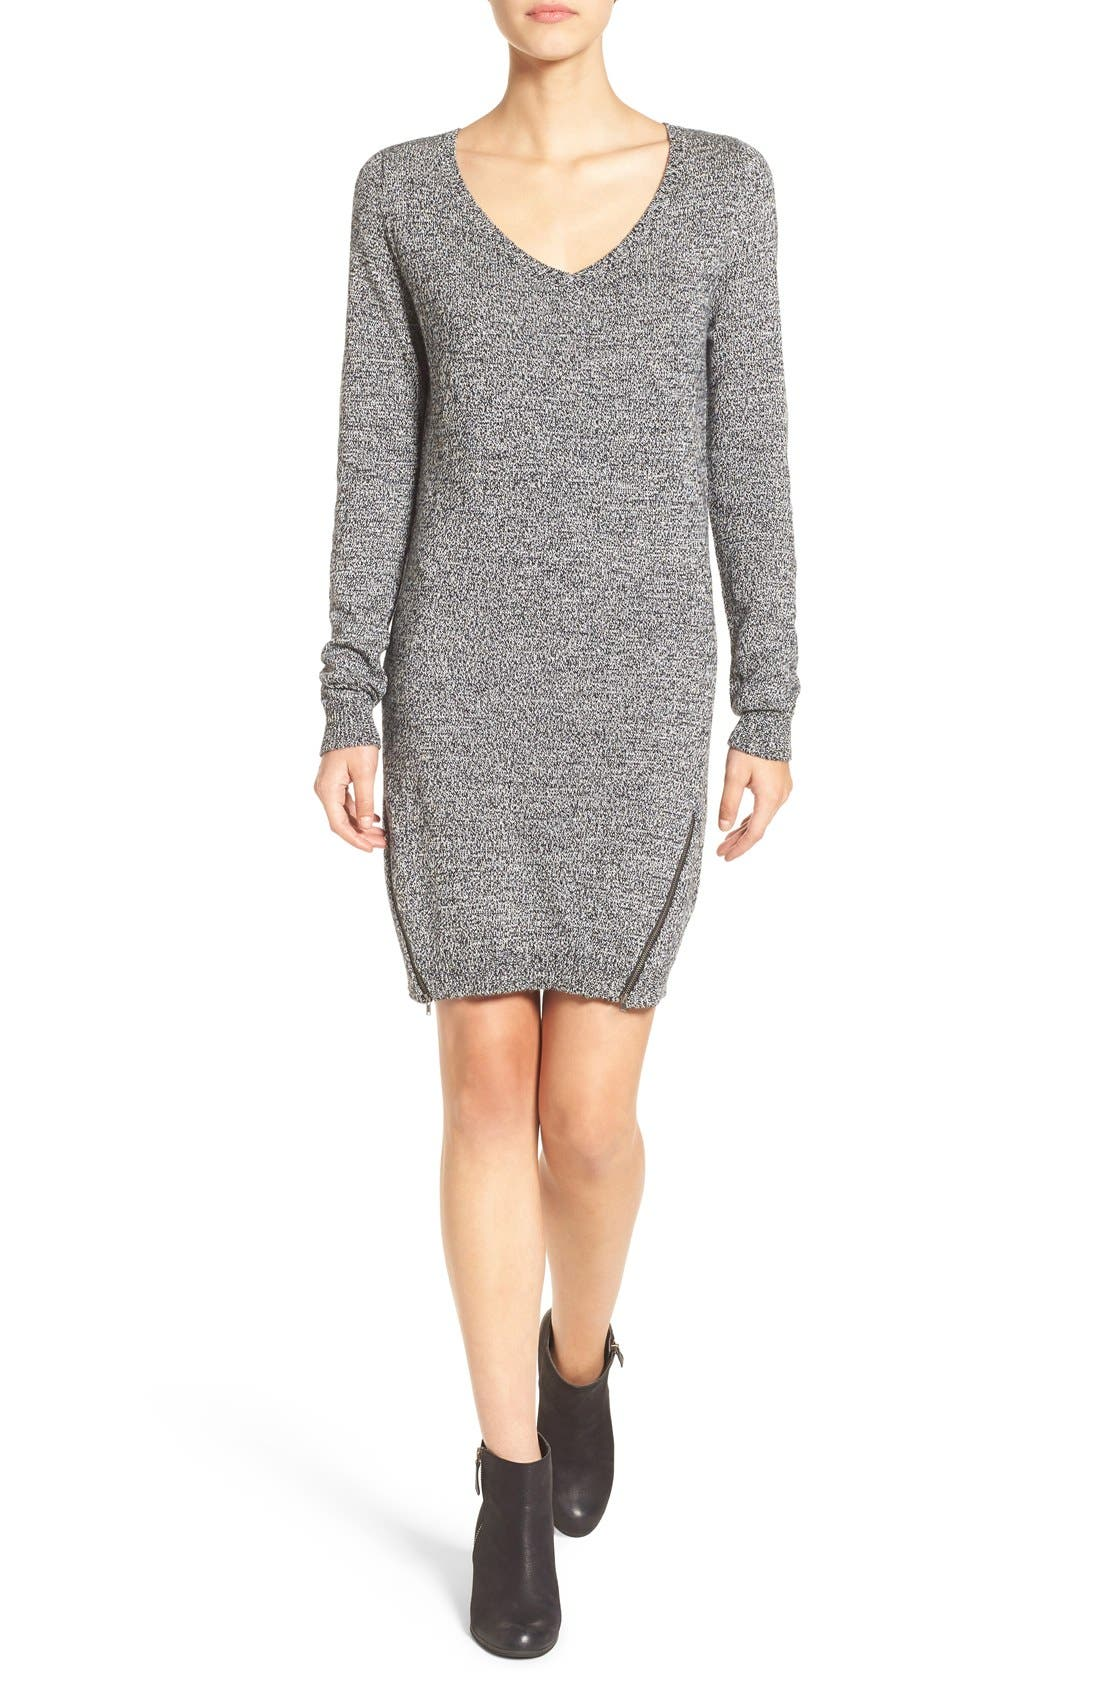 Alternate Image 1 Selected - BP. Zip Detail Sweater Dress